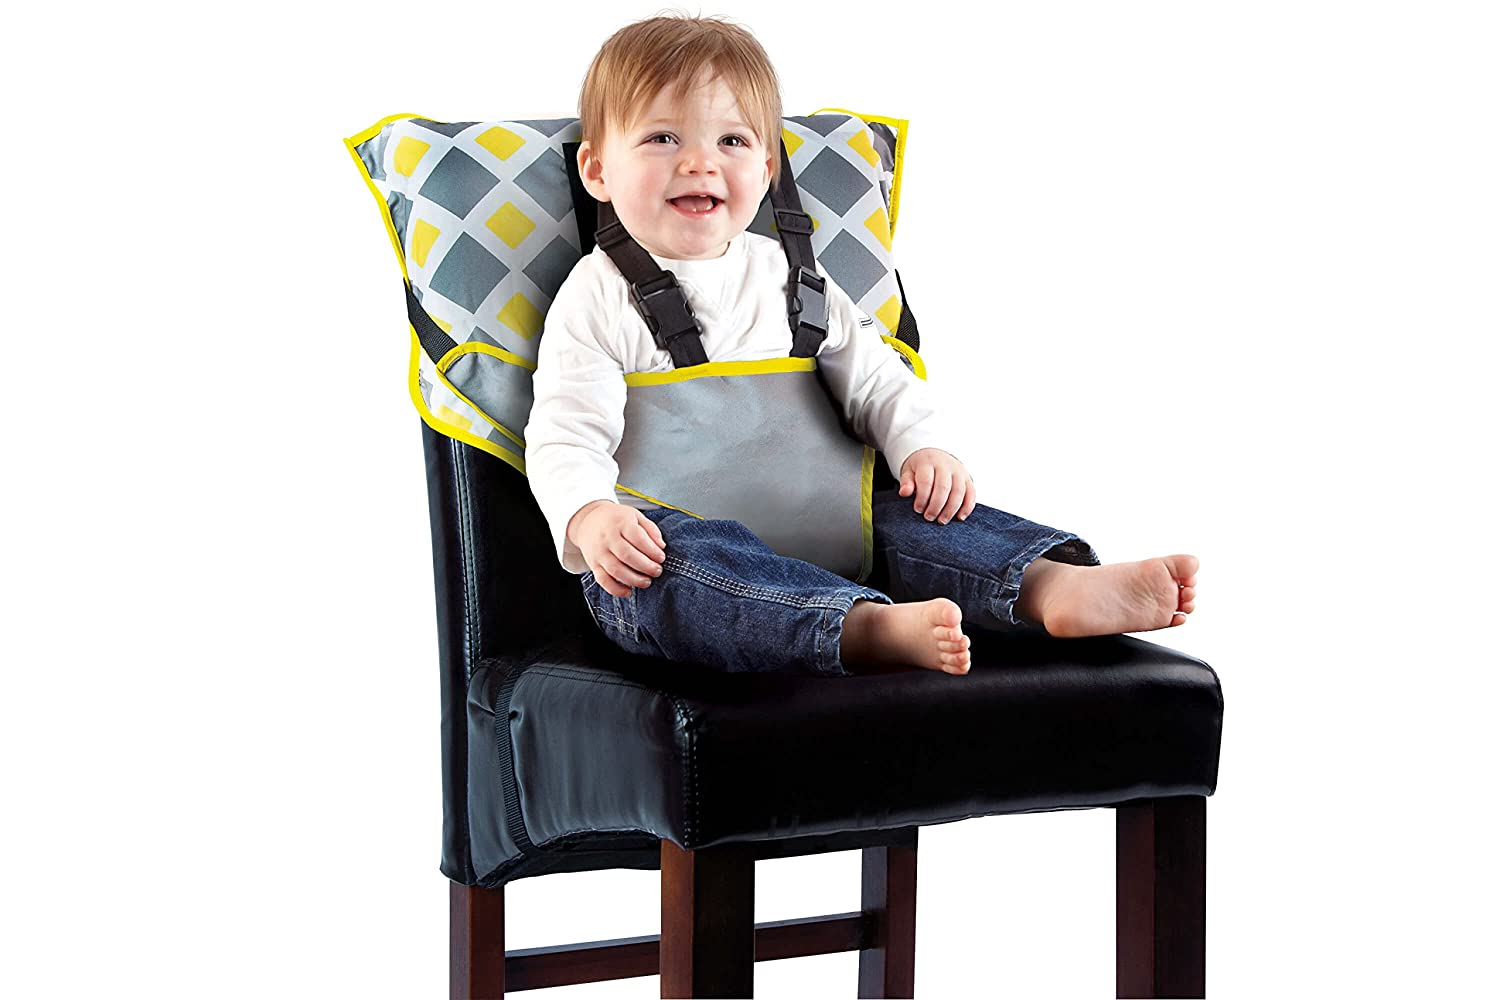 Cozy Cover Easy Seat Portable High Chair (Charcoal/Yellow) - Quick, Easy, Convenient Cloth Travel High Chair Fits in Your Hand Bag So That You Can Have It With You Everywhere For a Happier, Safer Infant/Toddler 9006